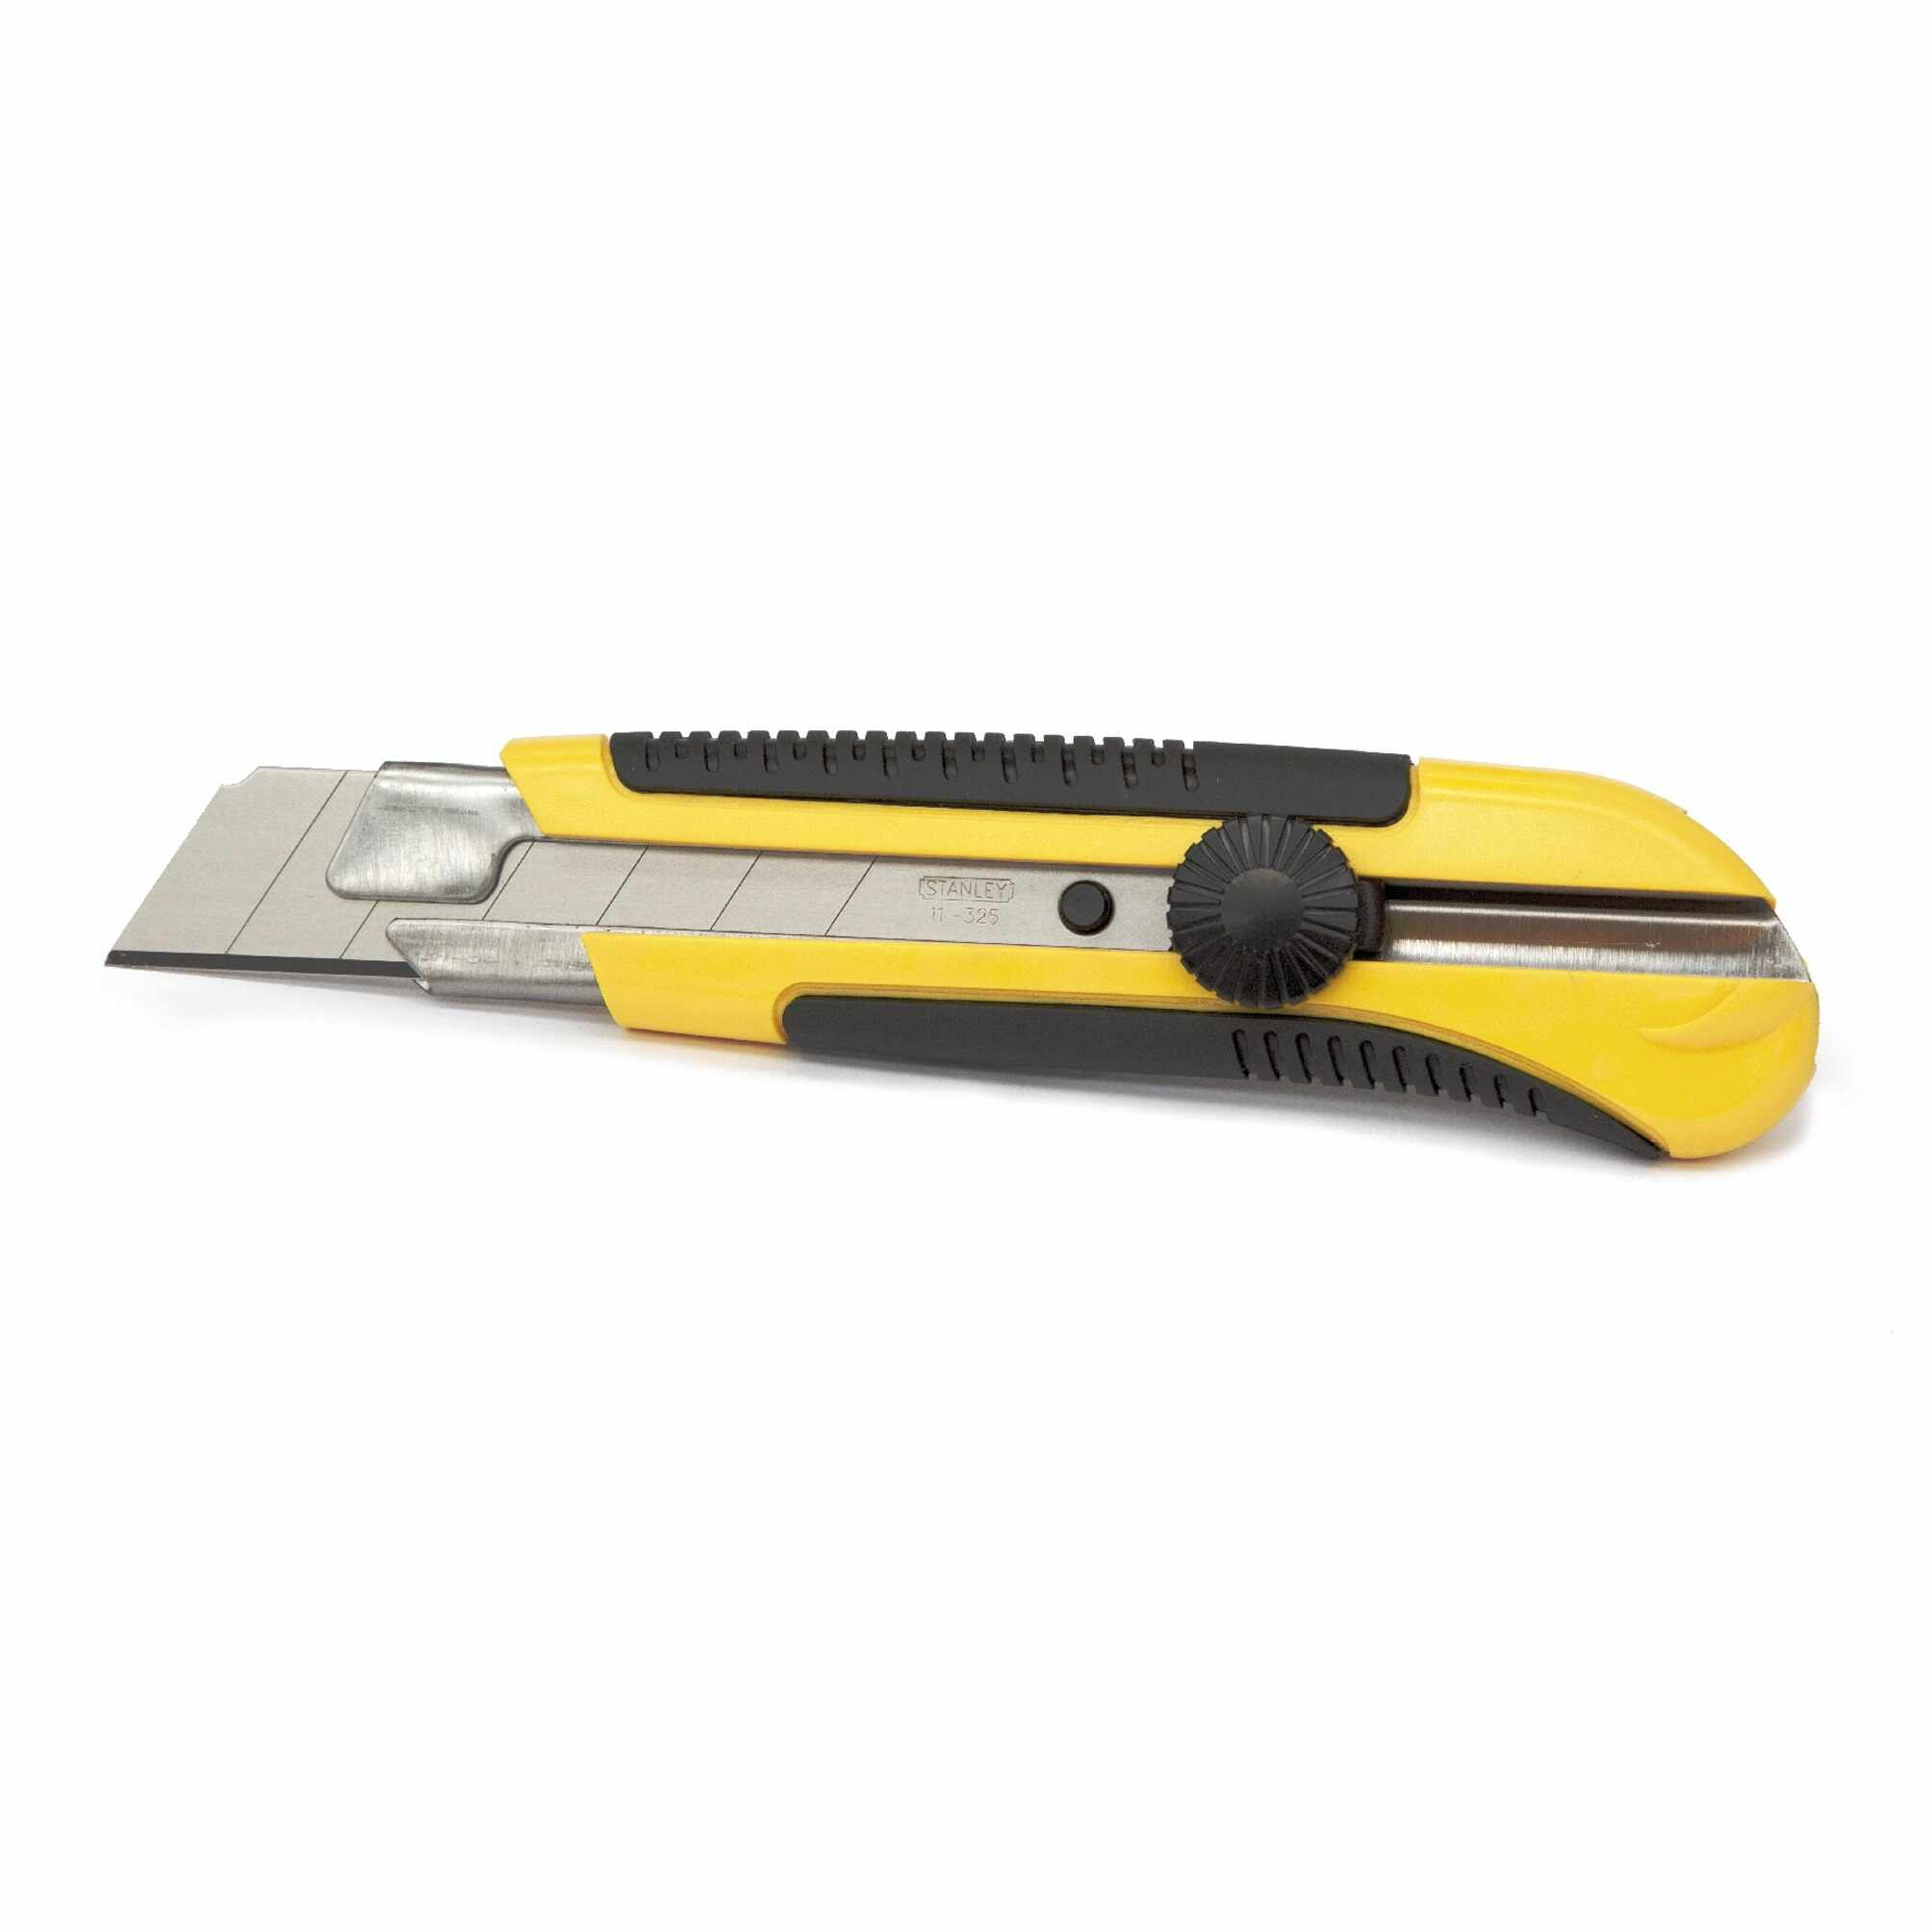 Cutter Stanley 180x25mm - 1-10-425